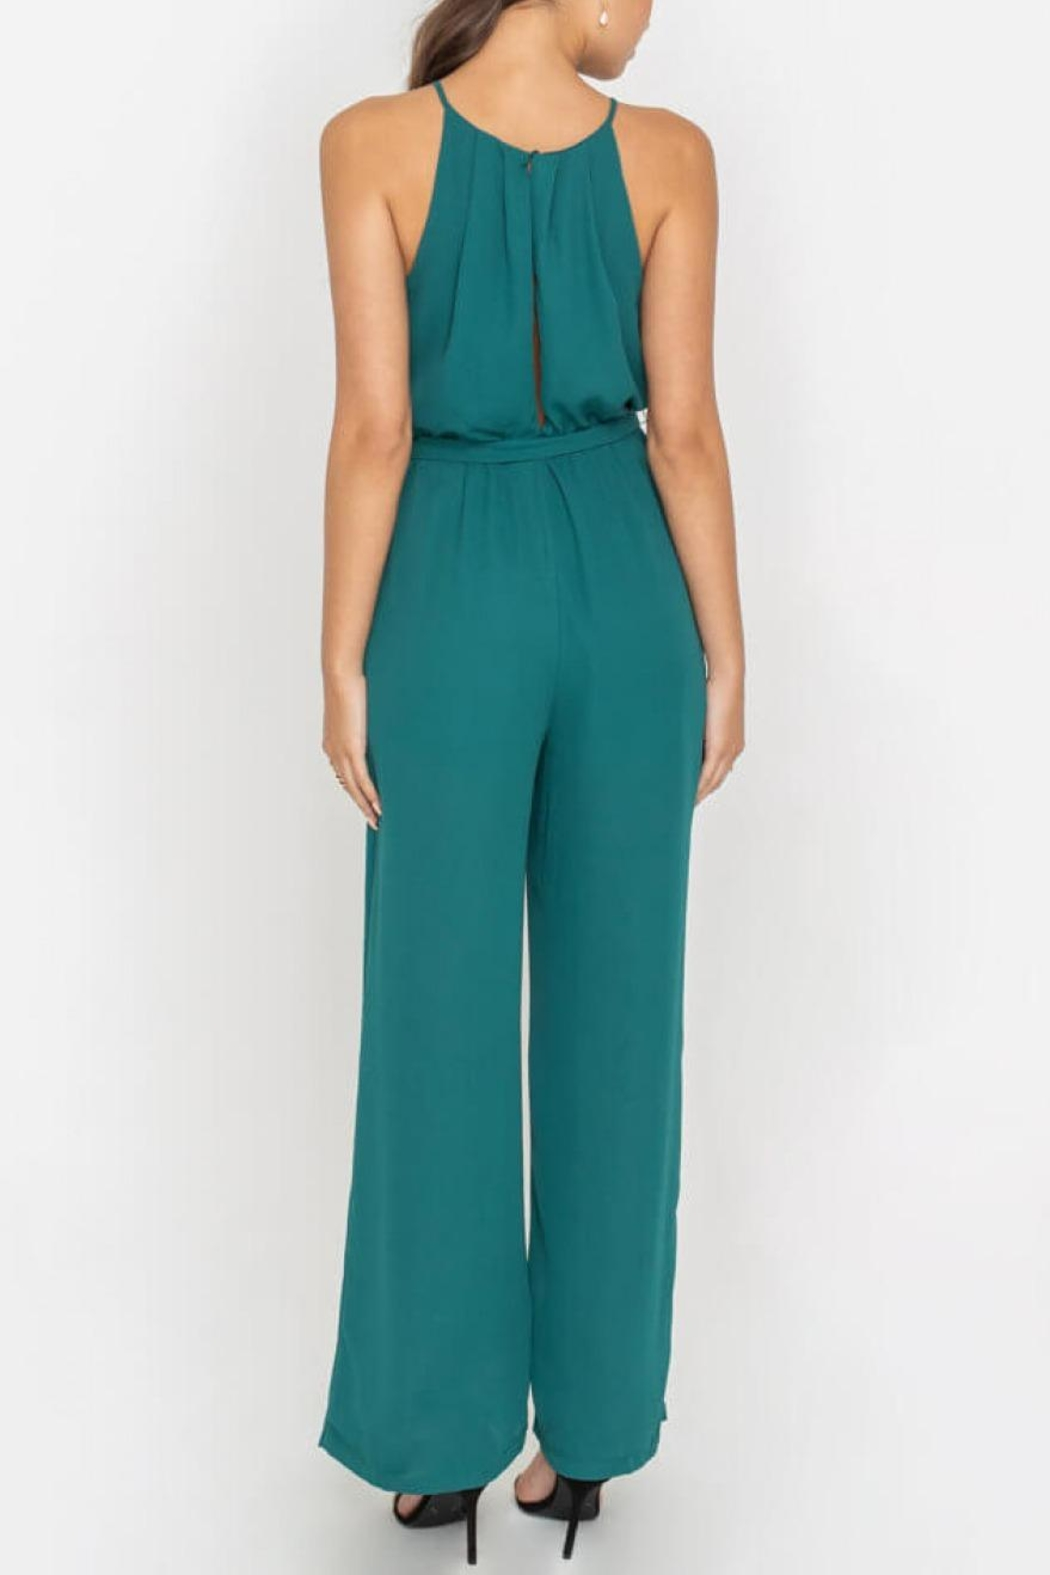 Lush Clothing  Teal Halter Jumpsuit - Side Cropped Image